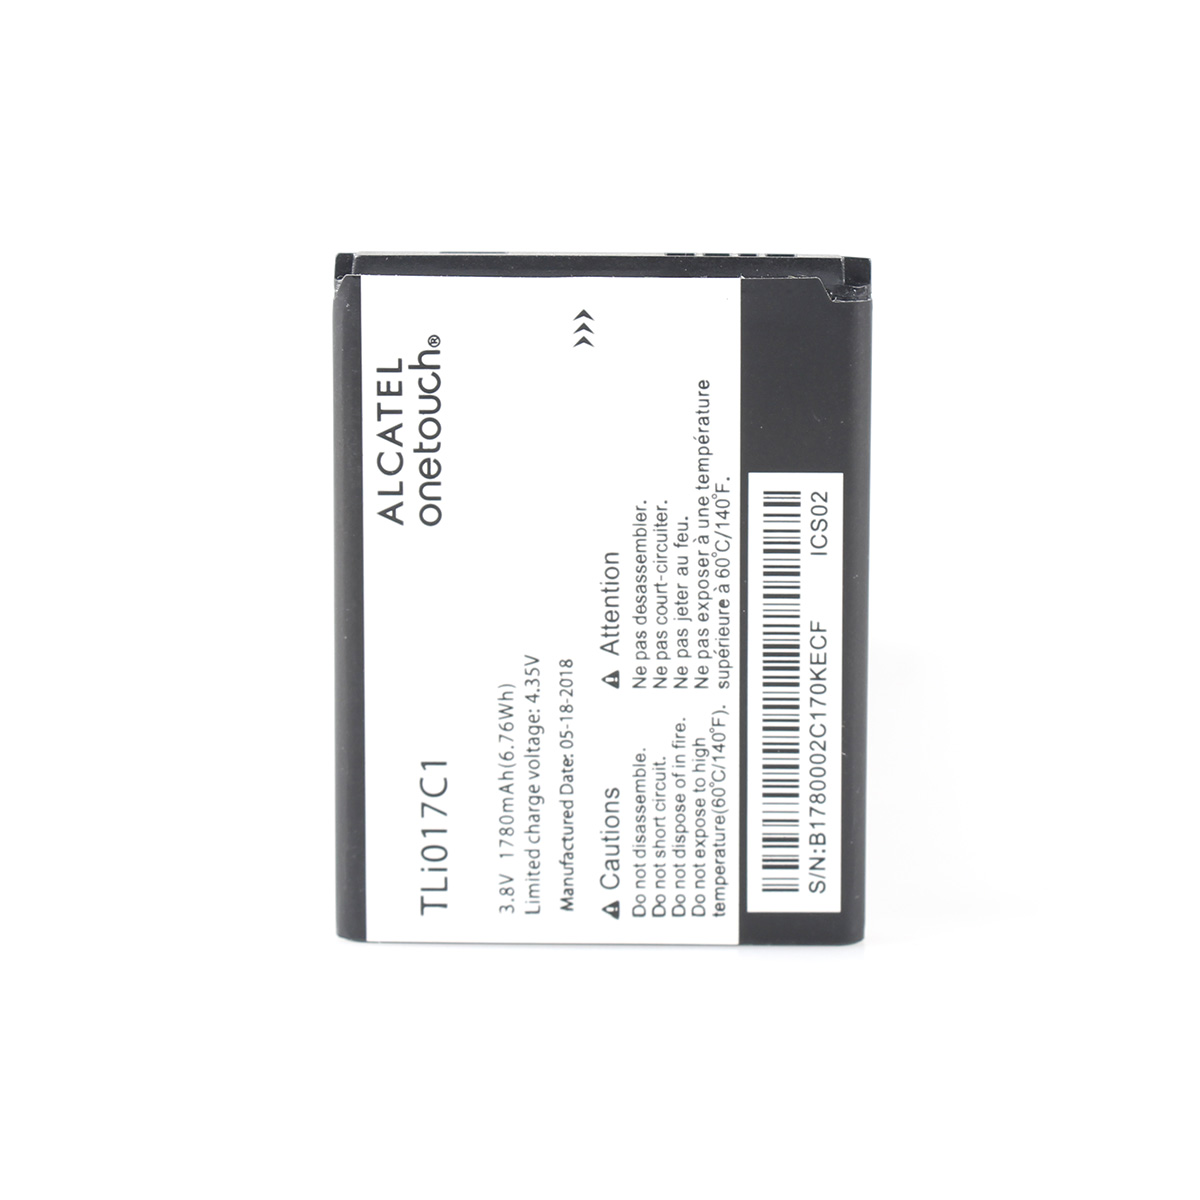 New Original Oem For Alcatel One Touch Cell Phone Battery